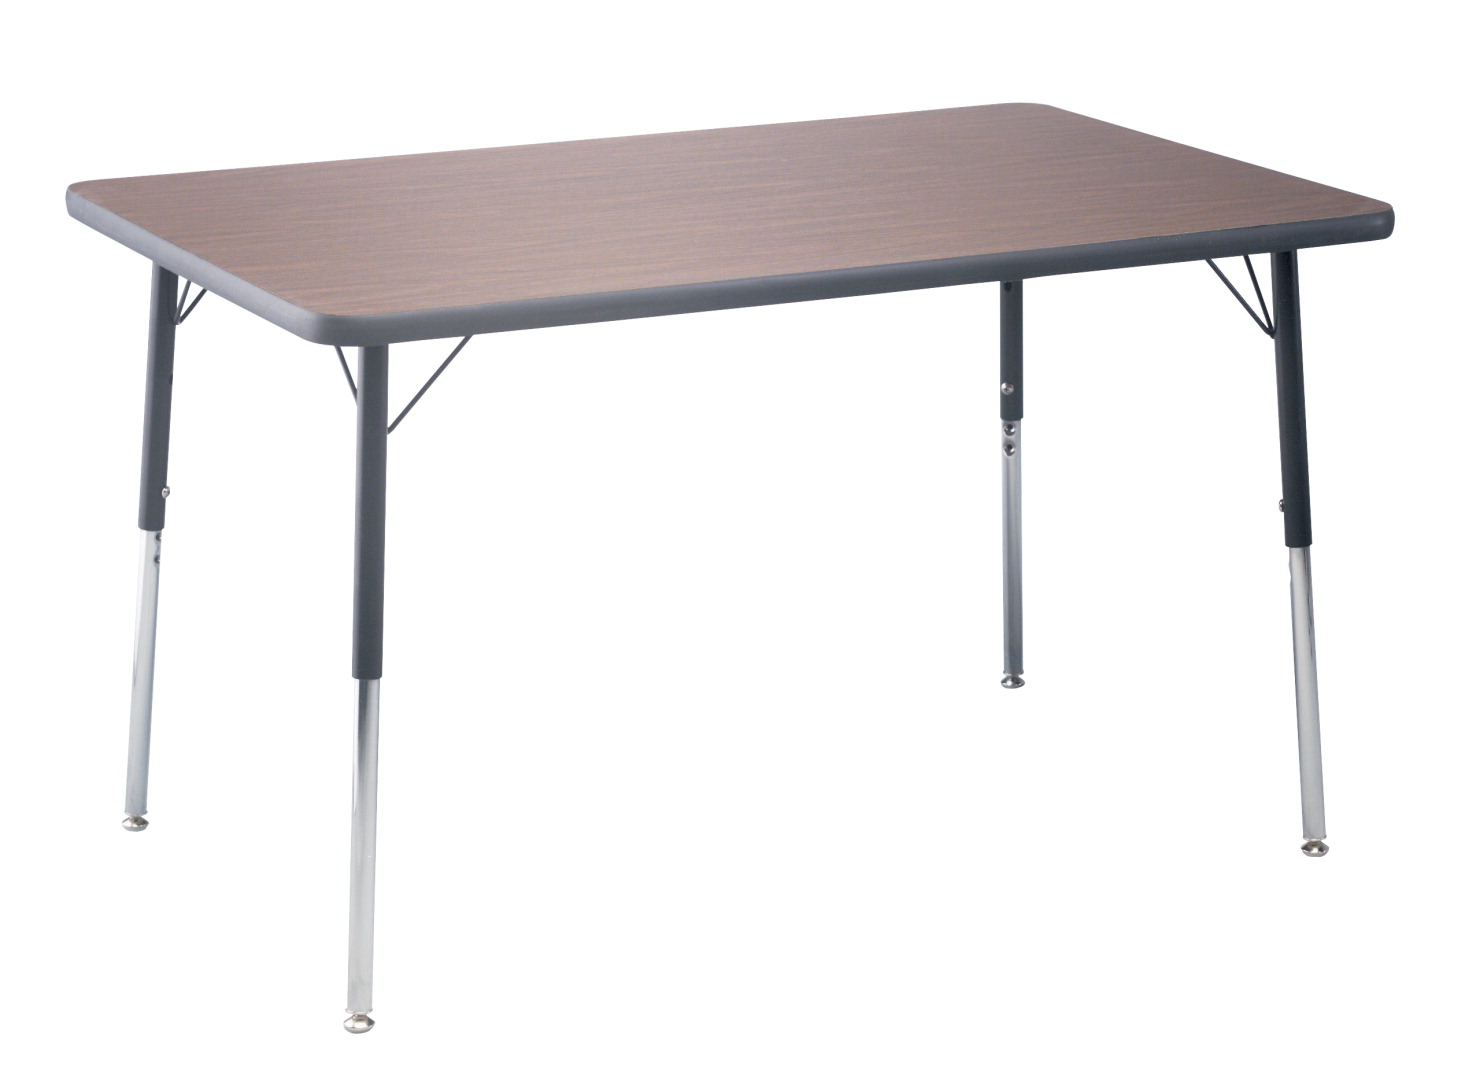 Classroom Select T-Mold Activity Table, Rectangle, Adjustable Height, 36 x 72 Inches, Various Options